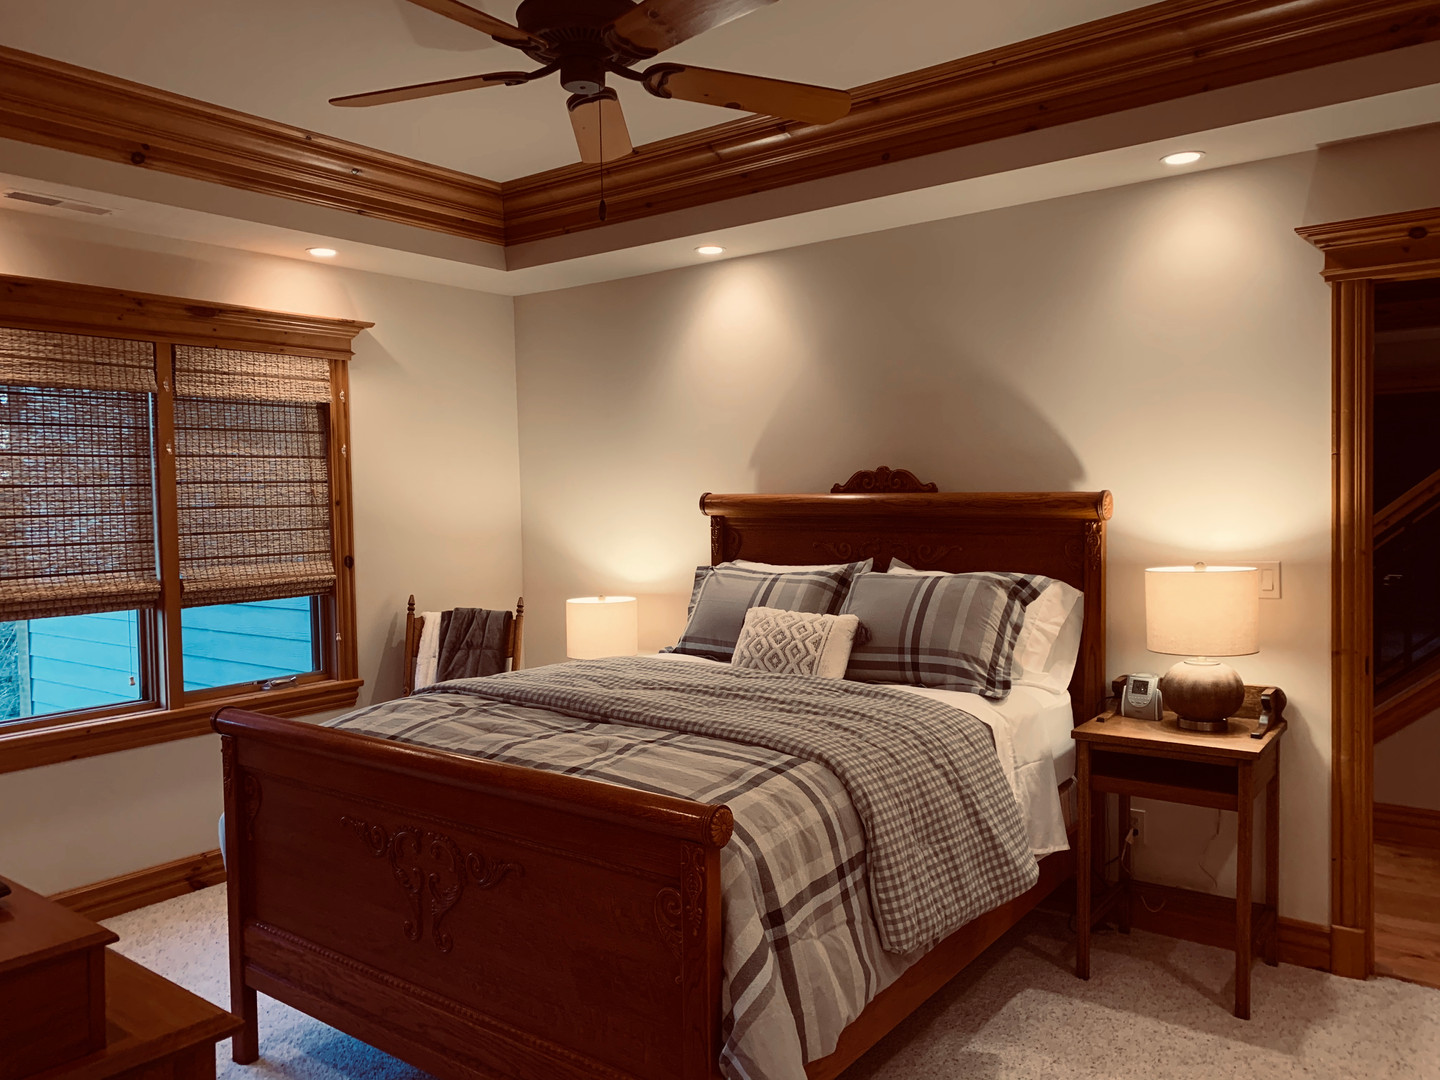 QUEEN BED WITH PRIVATE BATH